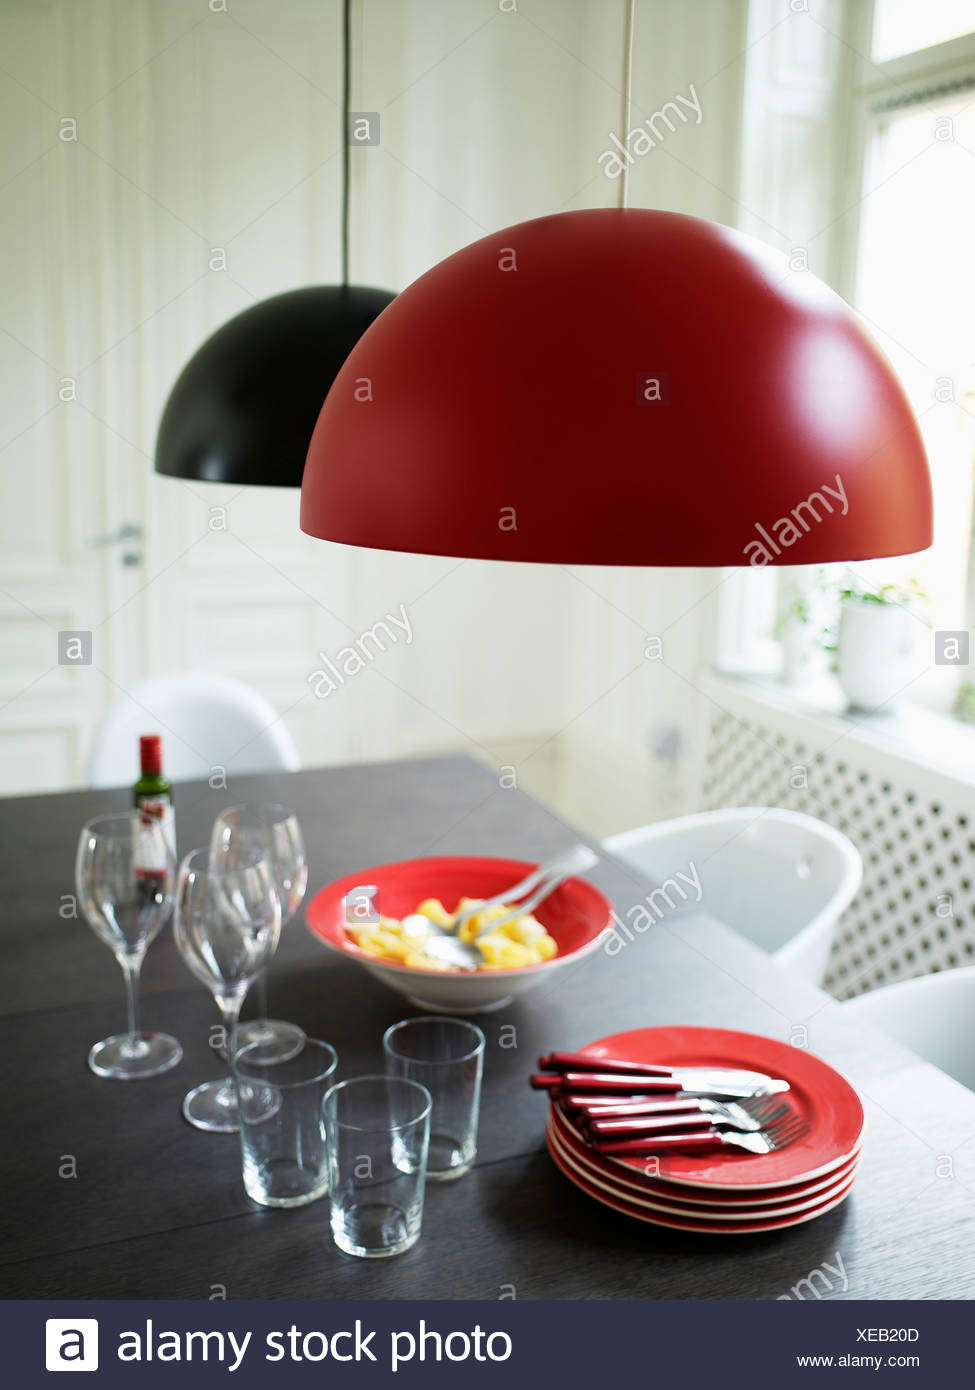 Modern design table with meal for three ready to eat - Stock Image